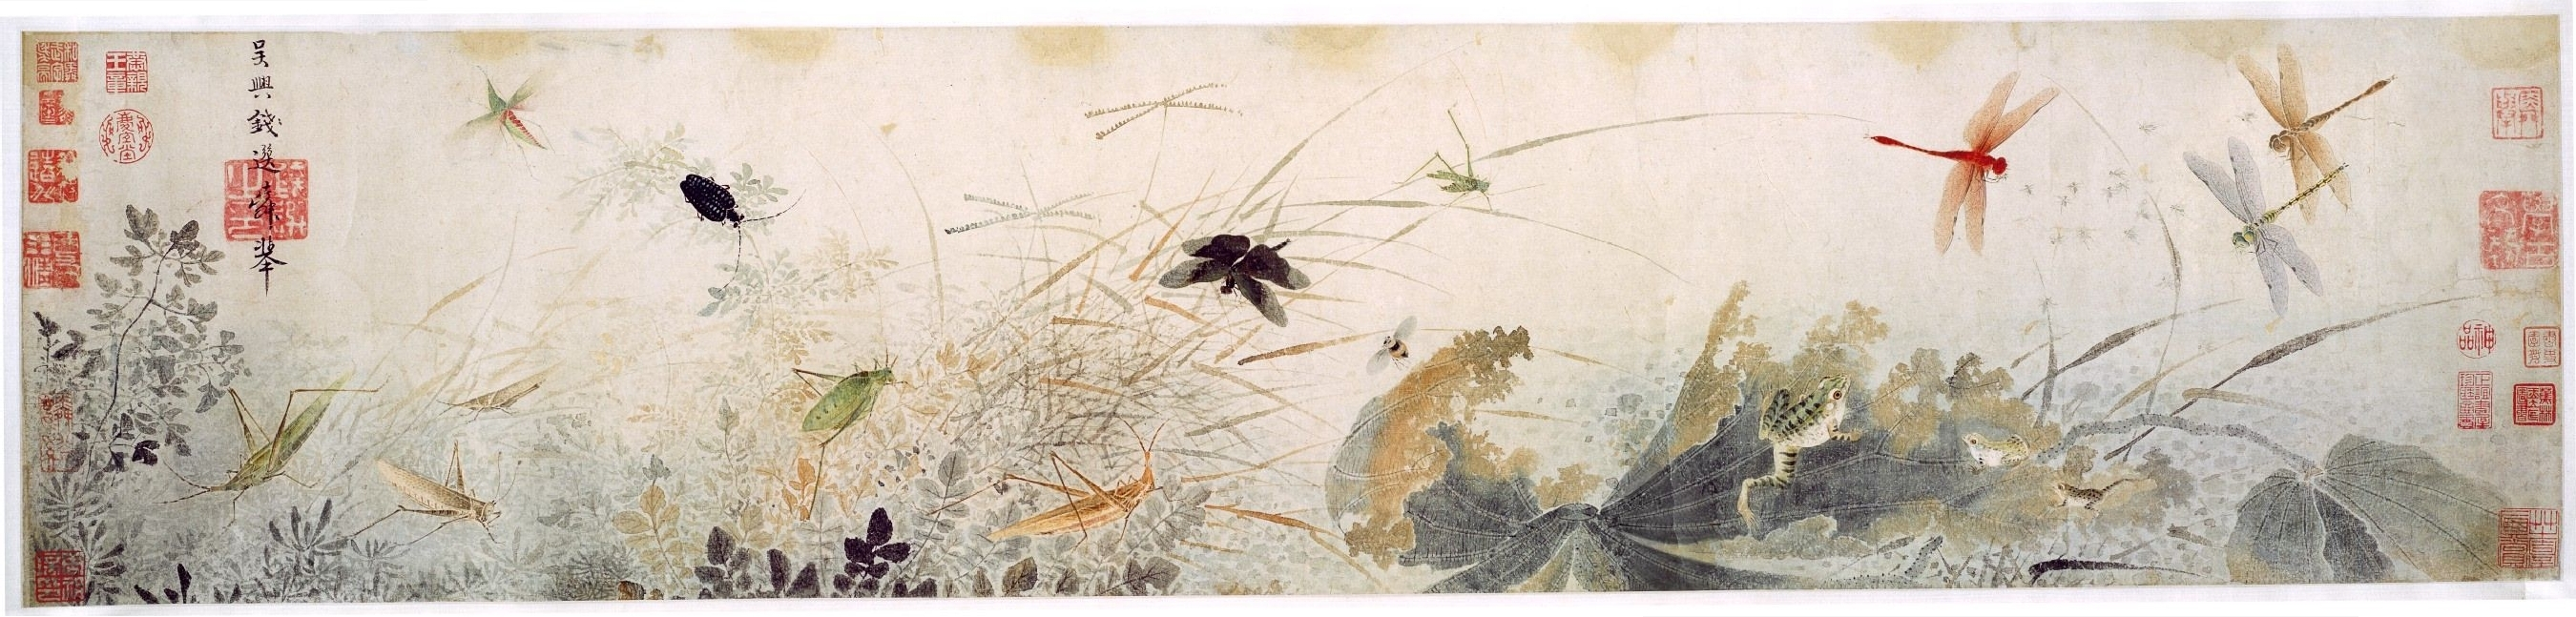 Bird and flower painting wikipedia qian xuan early autumng izmirmasajfo